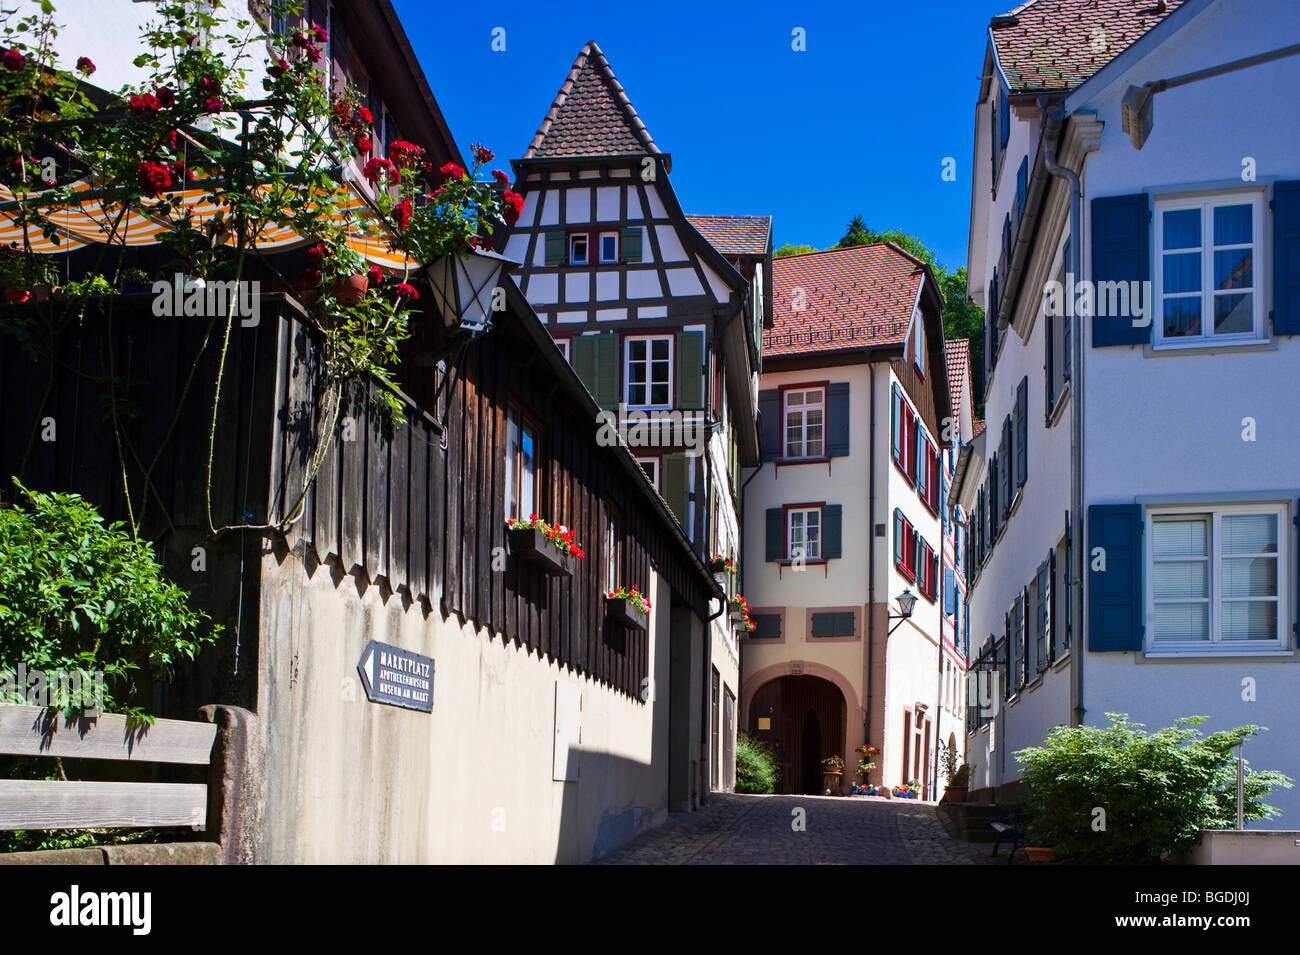 Half timber in the Spitalstrasse street, Schiltach, Black Forest, Baden-Wuerttemberg, Germany, Europe - Stock Image